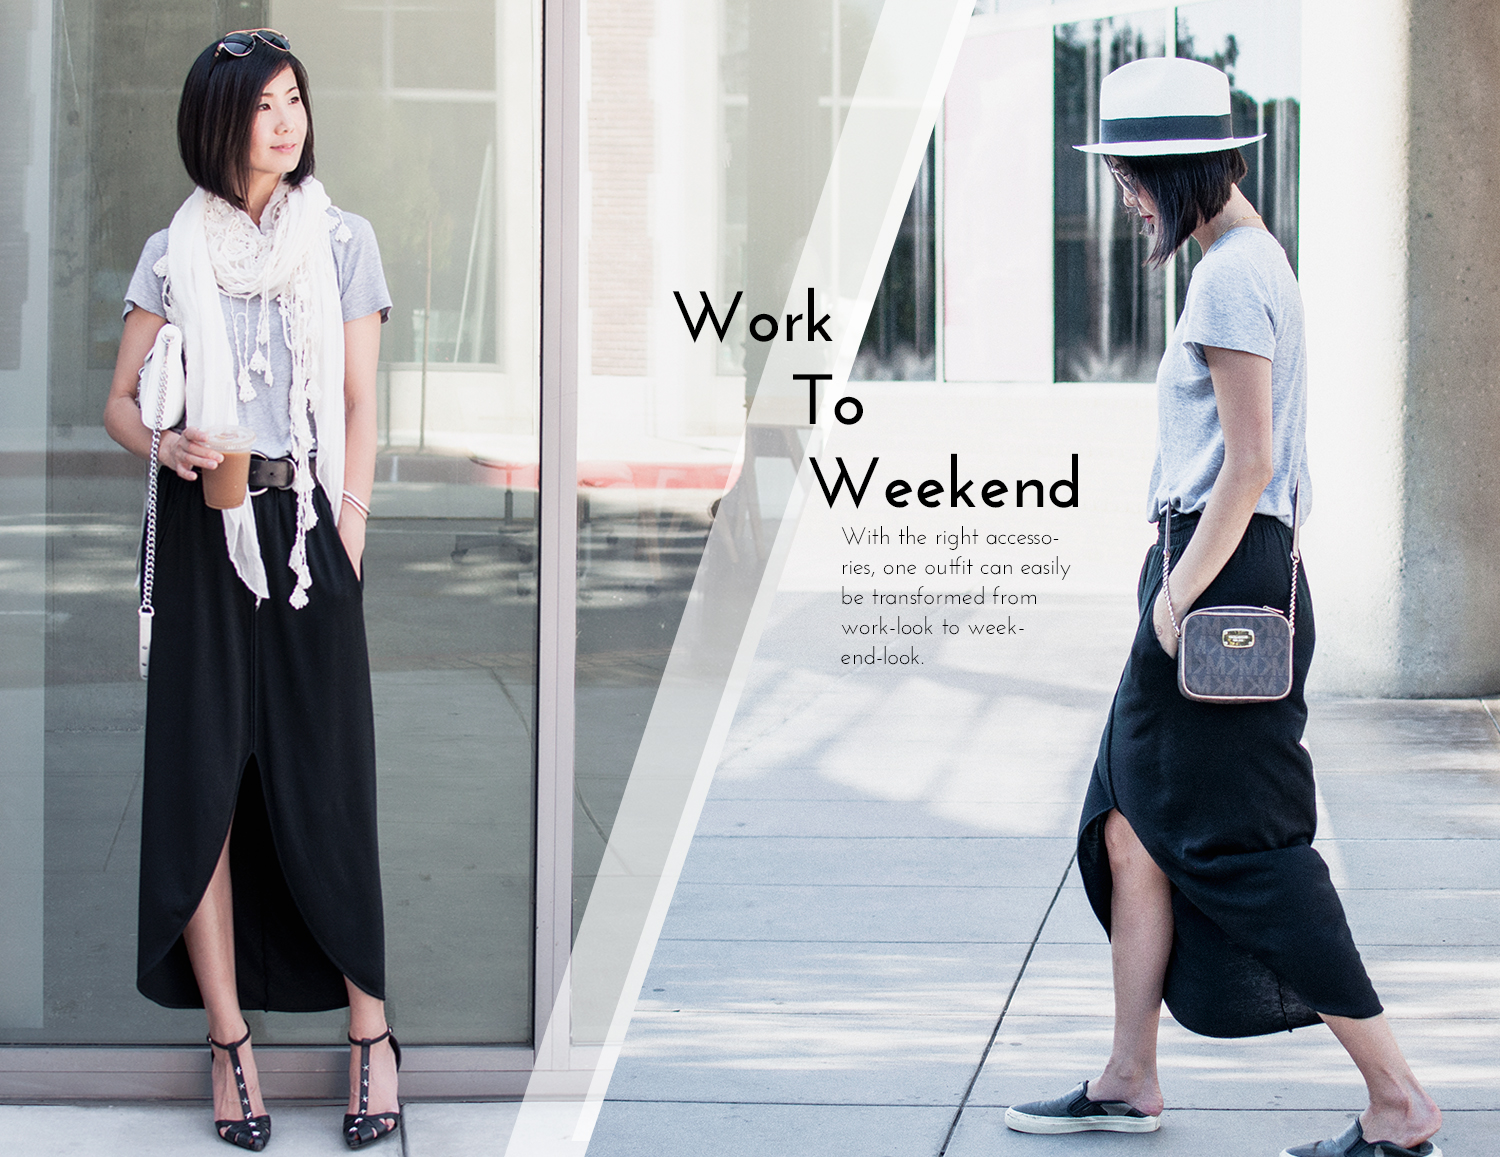 From Work Outfit to Weekend Outfit